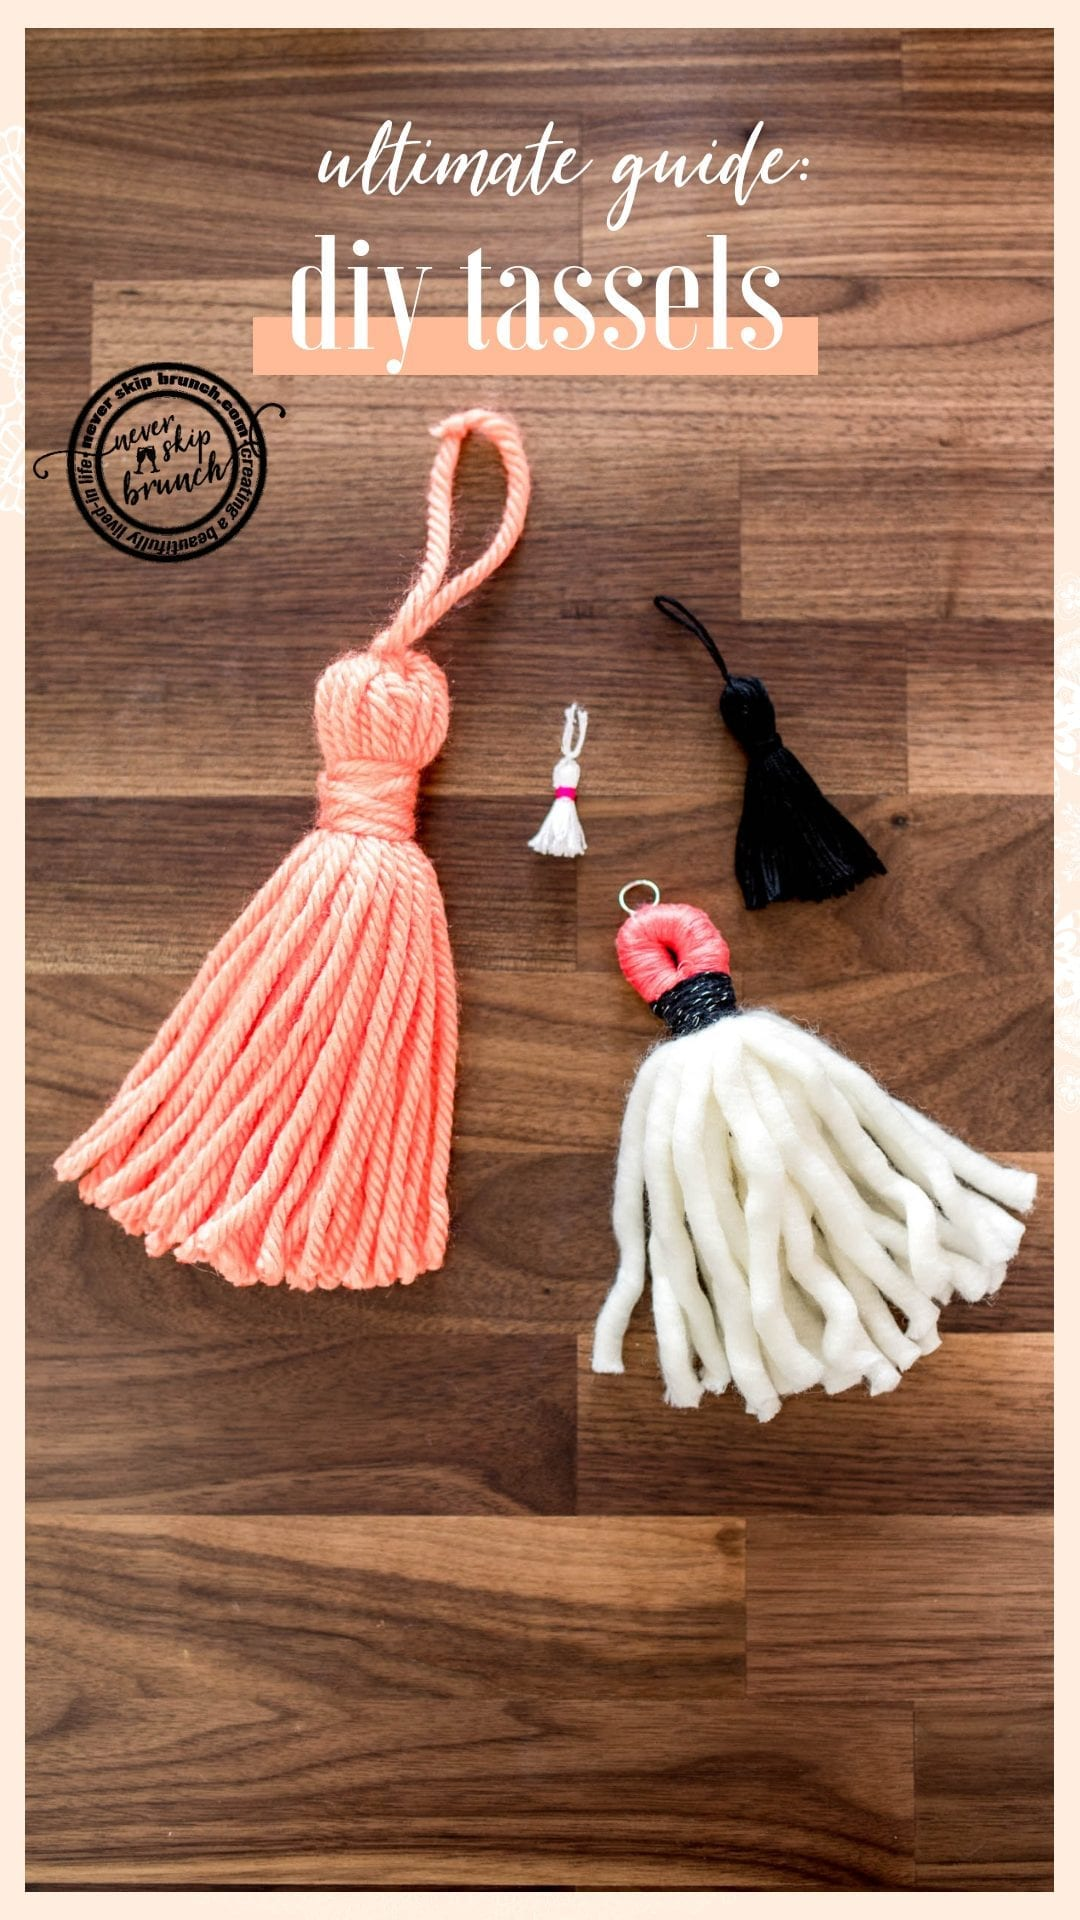 tassel diy | how to make tassels diy | tassel diy yarn |  Tassel tutorial | tassel diy boho | » Never Skip Brunch by Cara Newhart #brunch #DIY #tassels